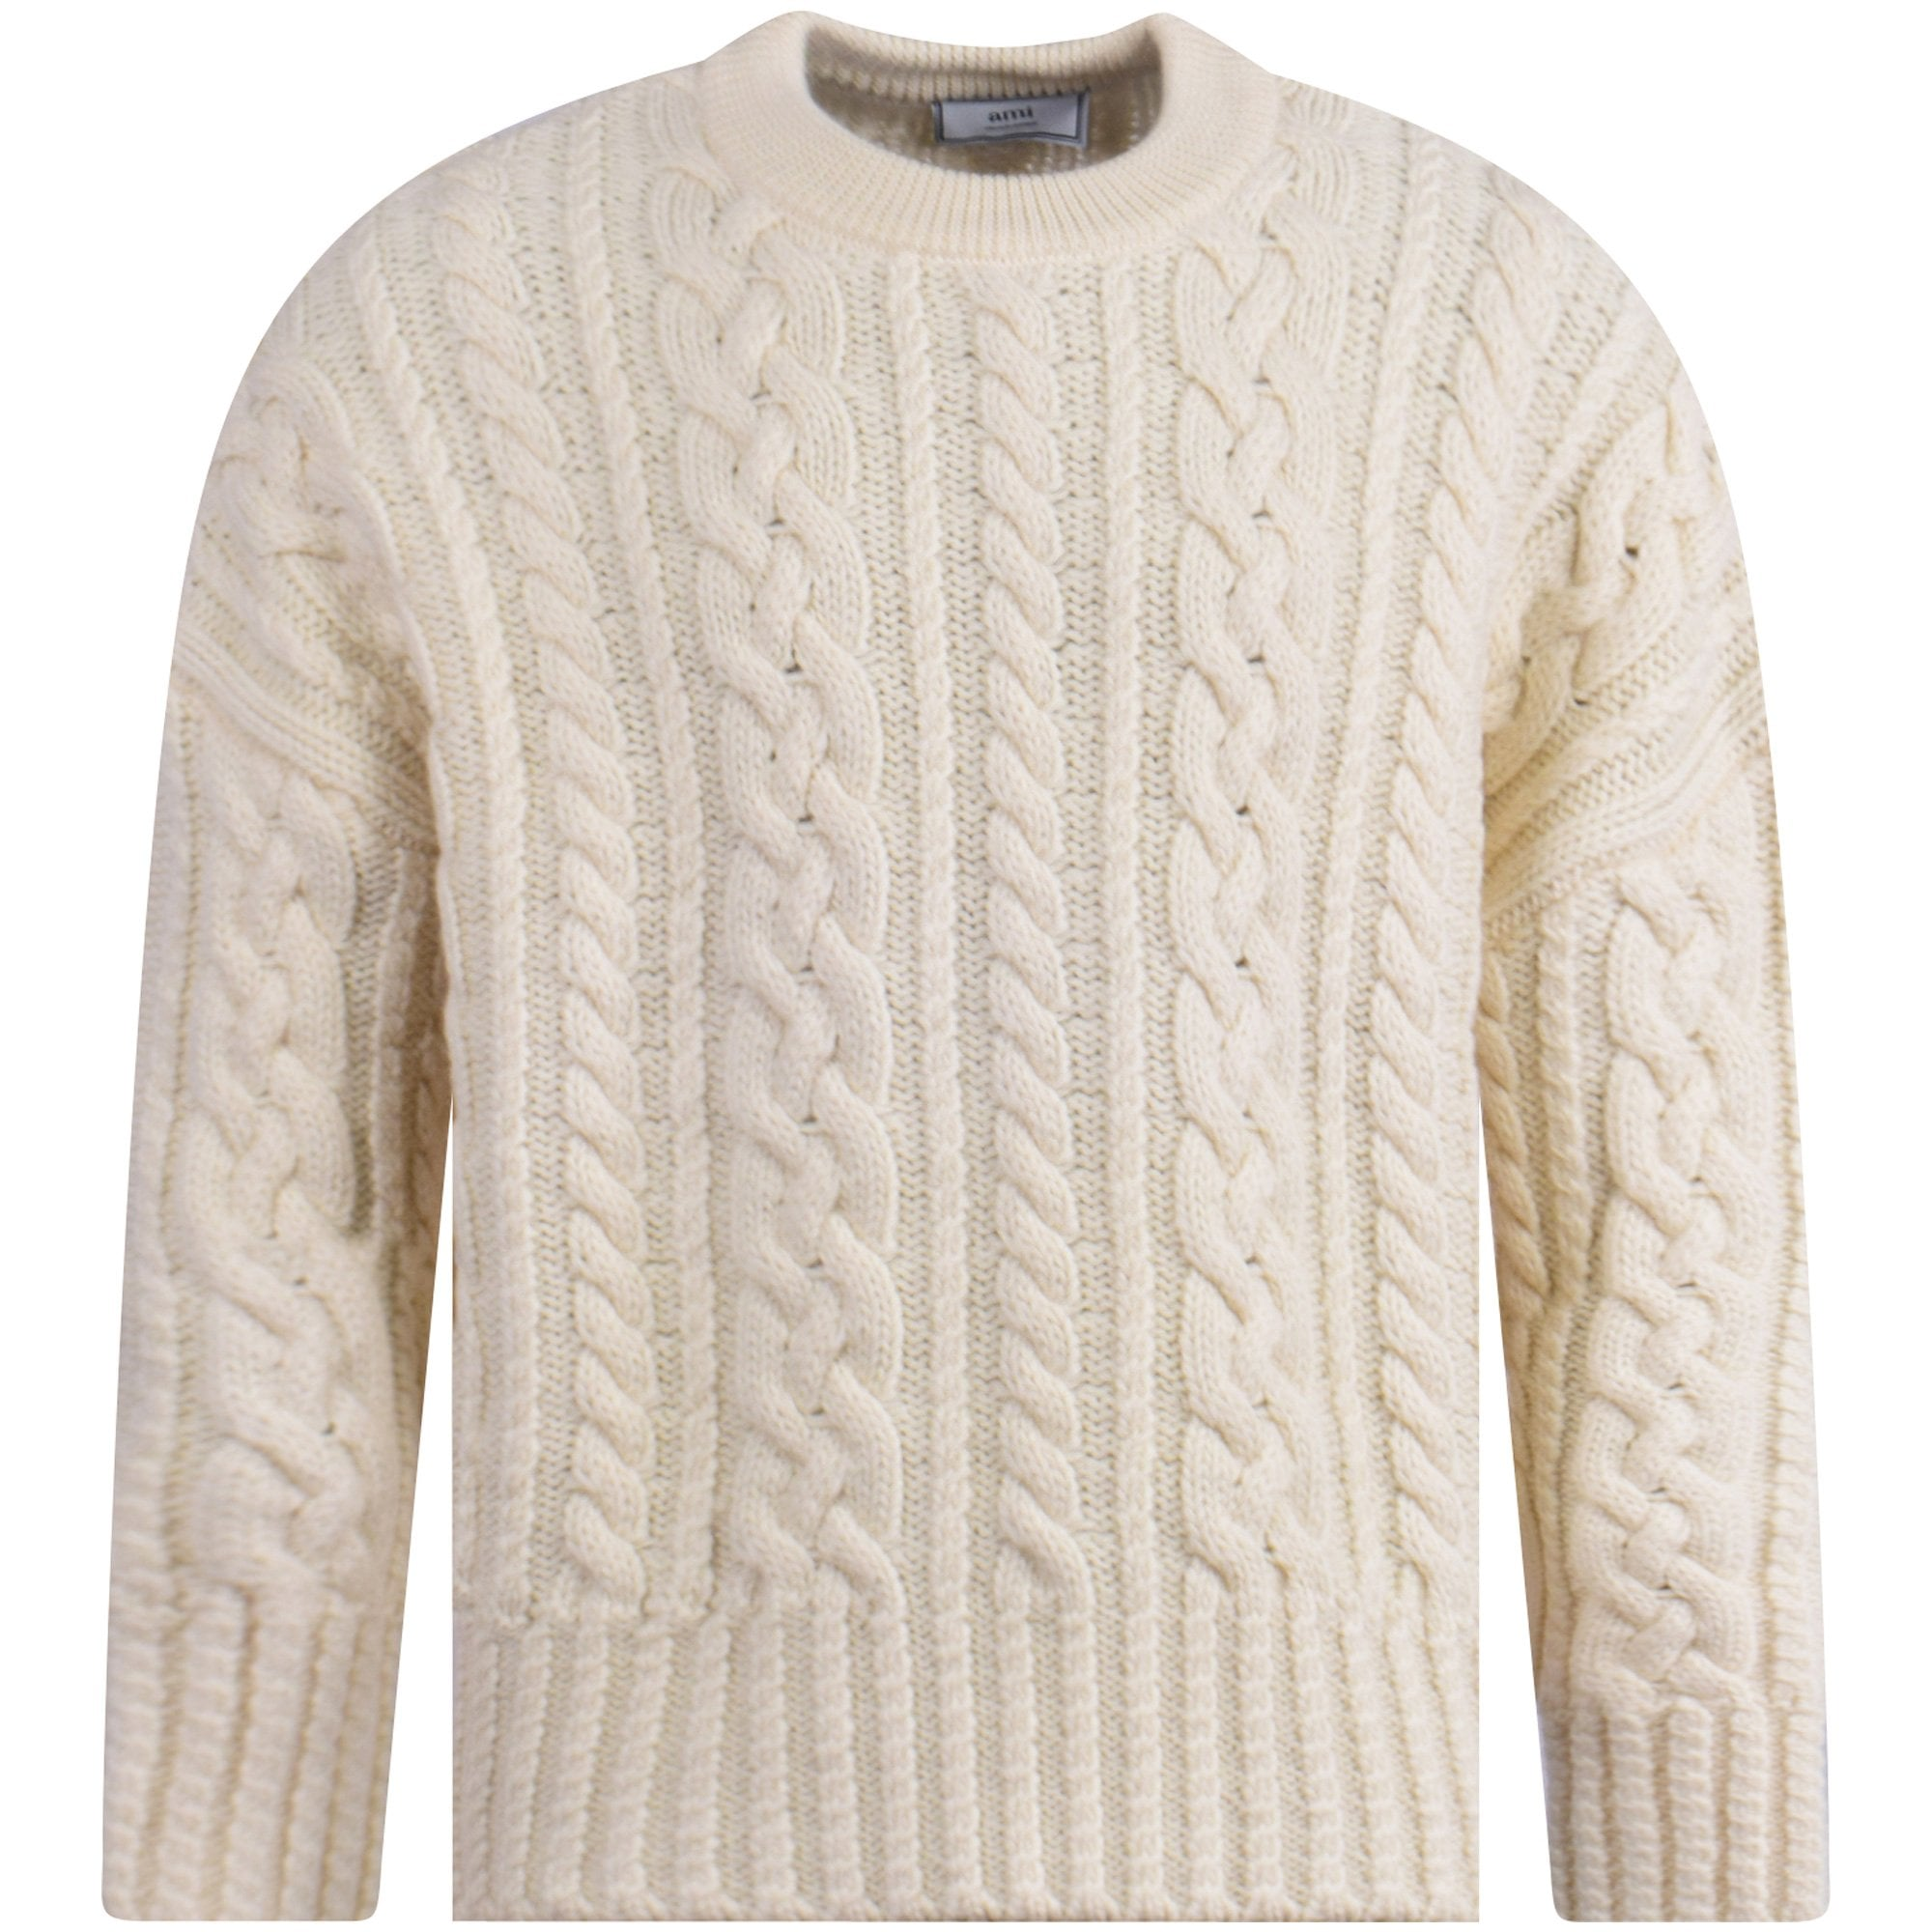 AMI PARIS Off White Cable Knit Oversized Jumper